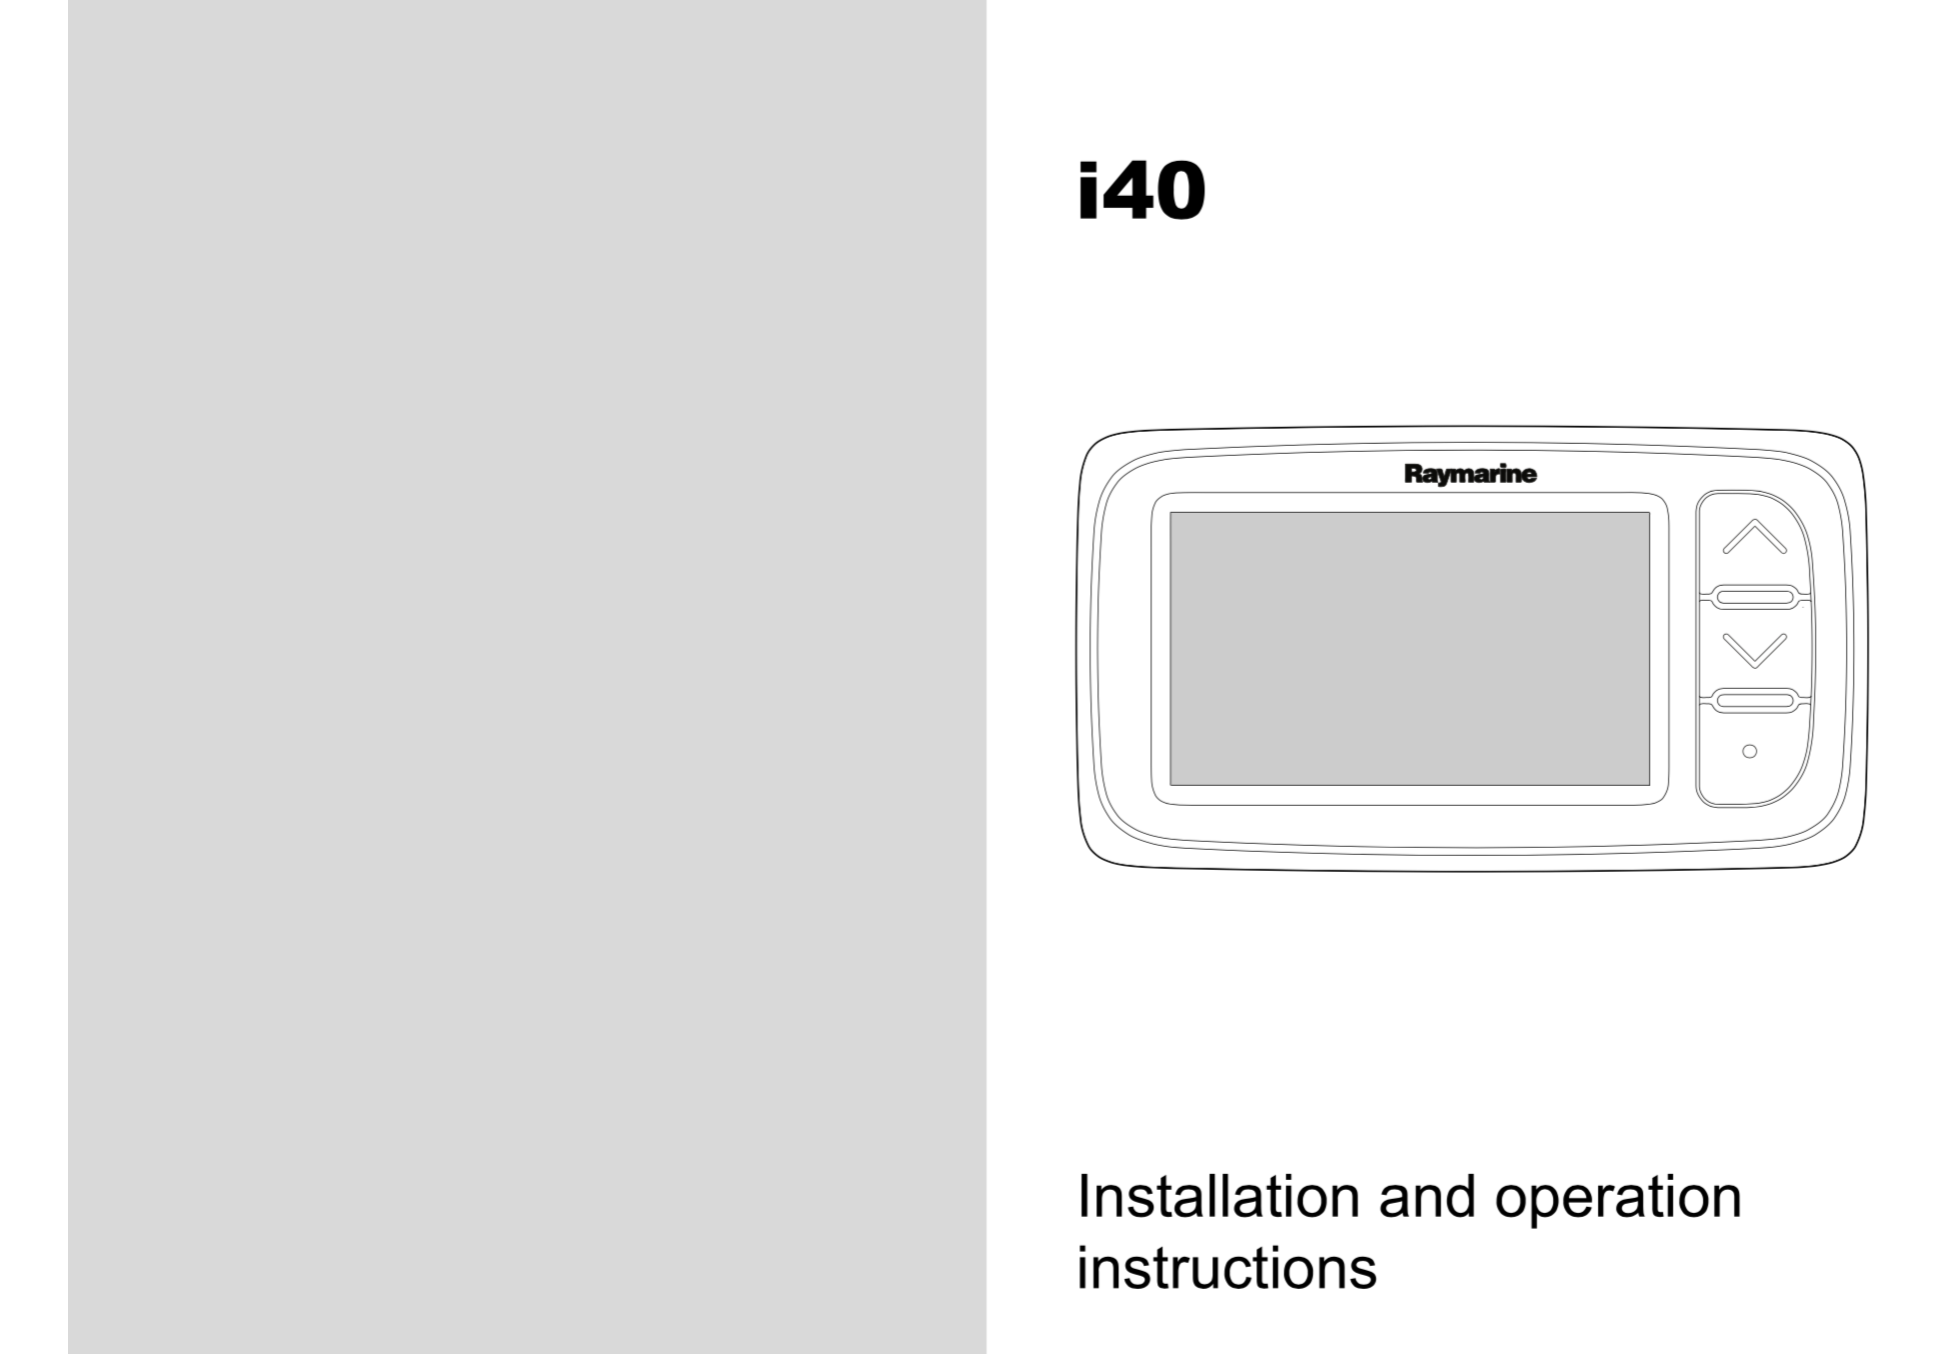 i40 instrument installation operation instructions